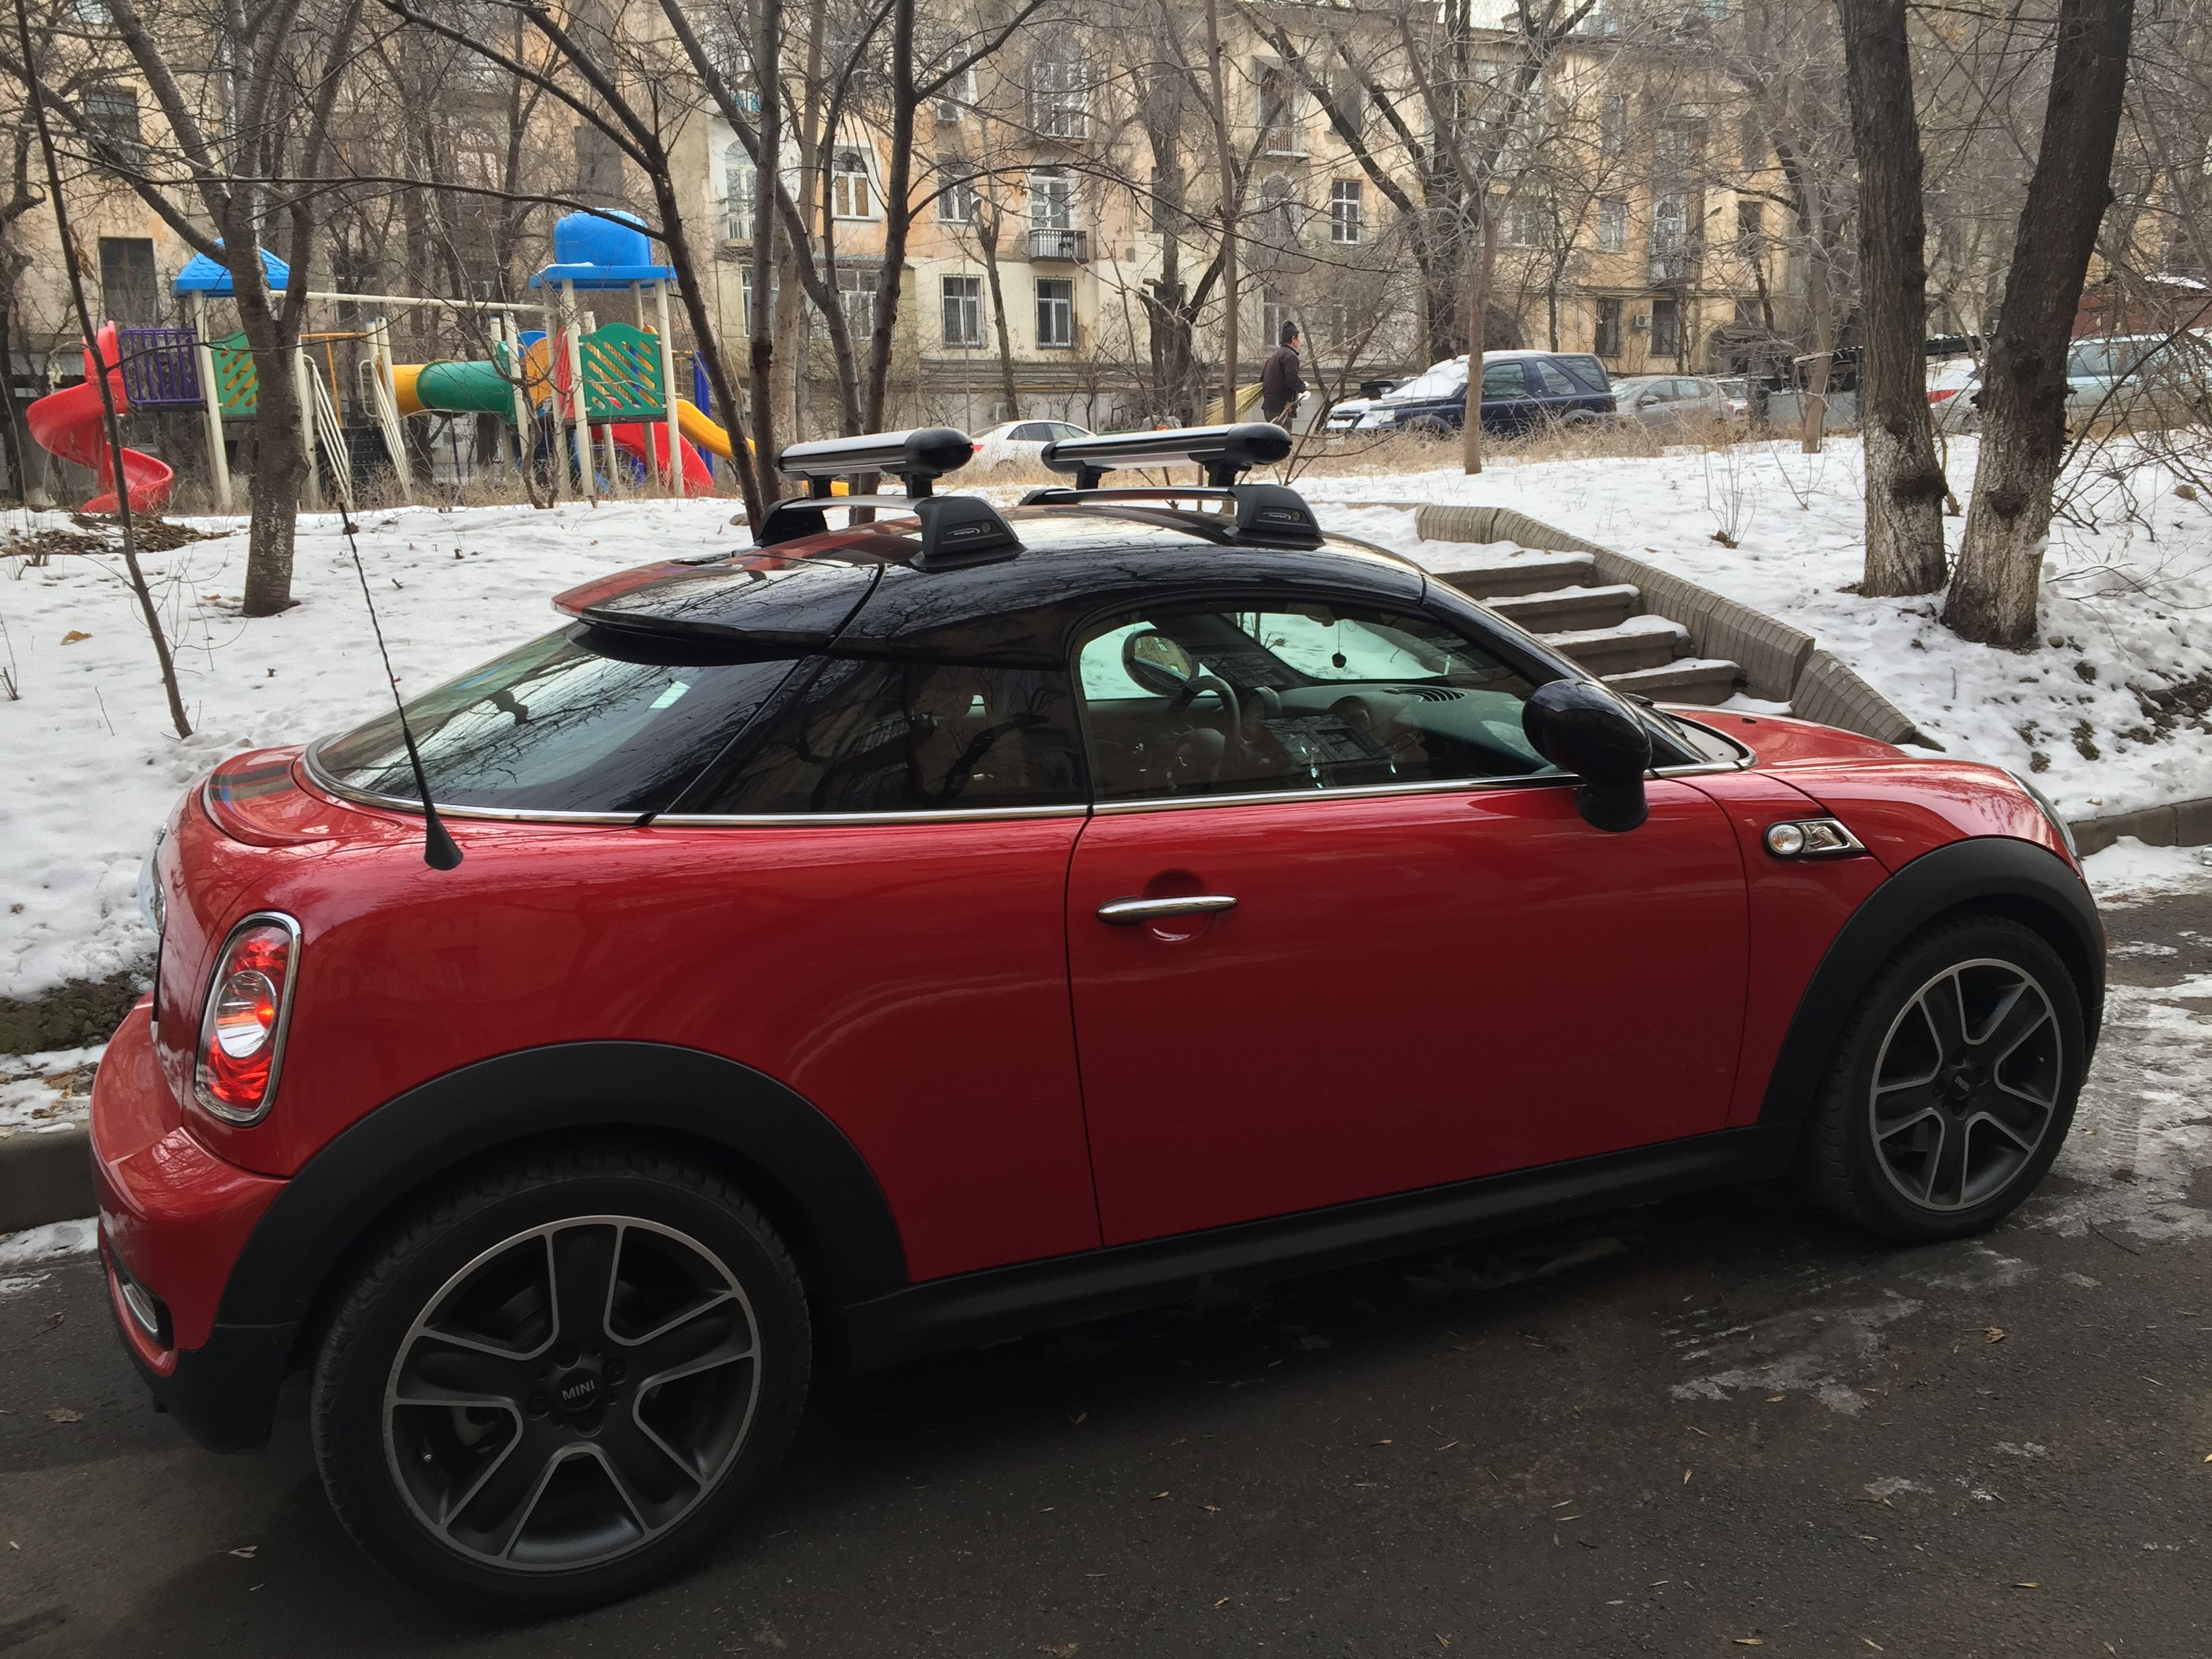 Mini Cooper S Coupe Roof Rack Snowboard Mini Coupe Cooper Roof